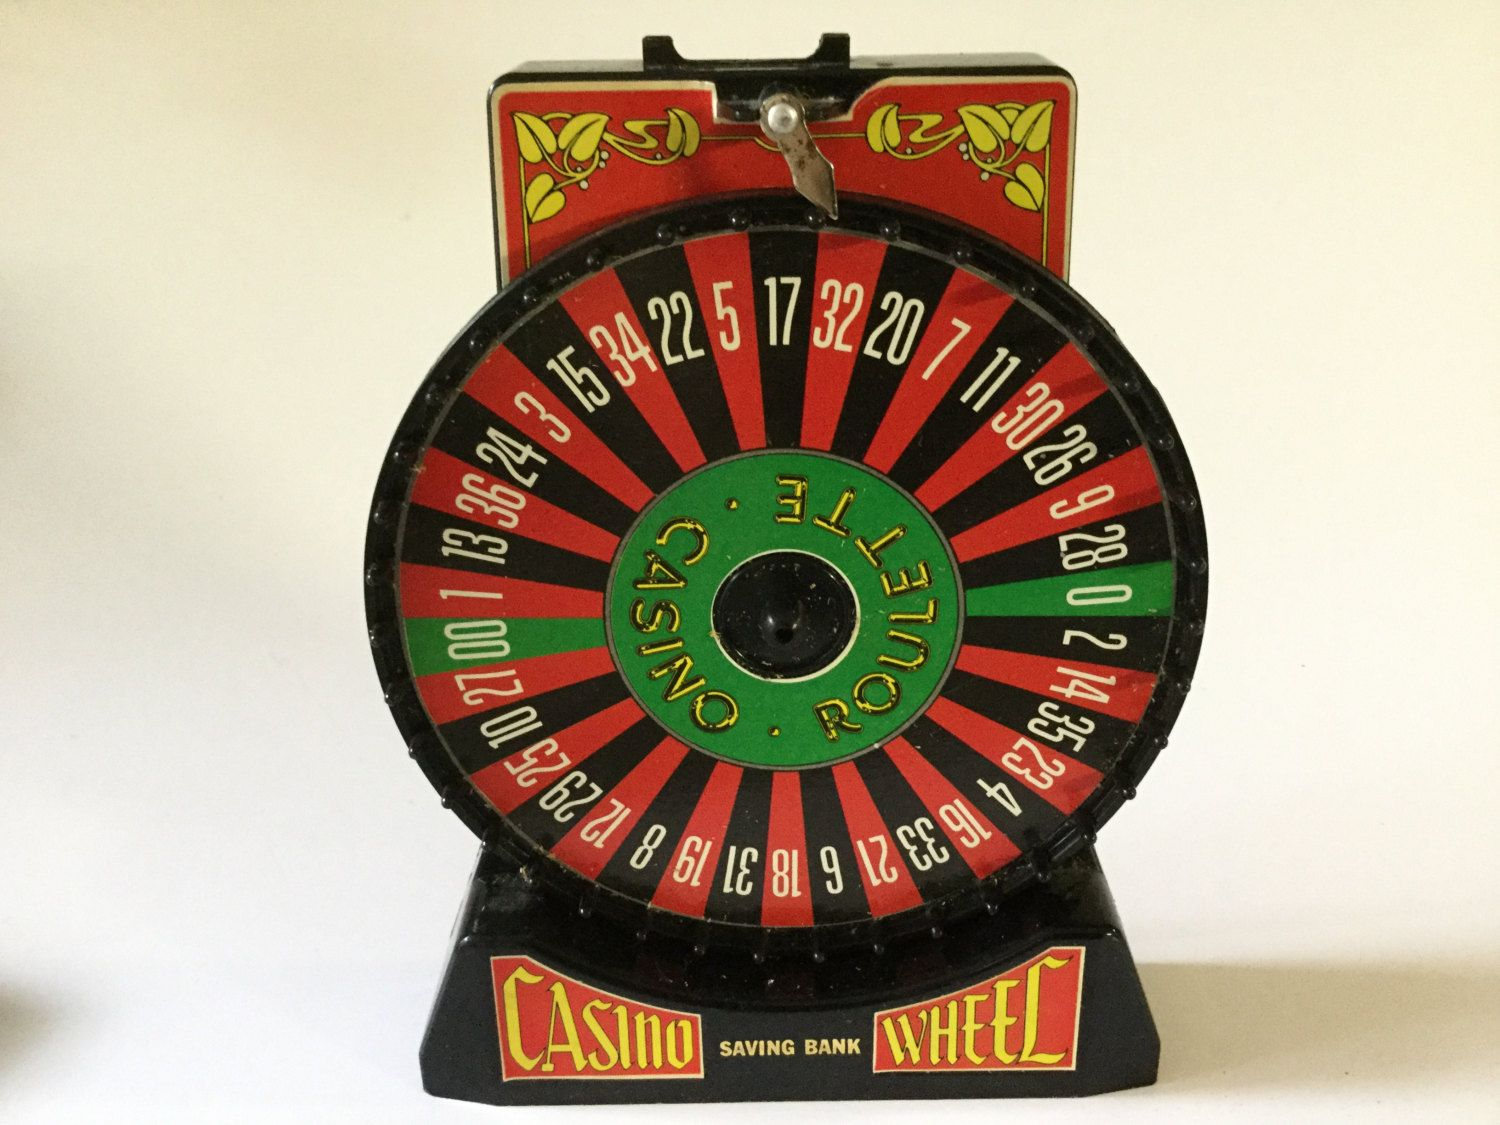 80's Casino Wheel Saving Bank Roulette Game Piggy Bank by Hannahandhersisters on Etsy